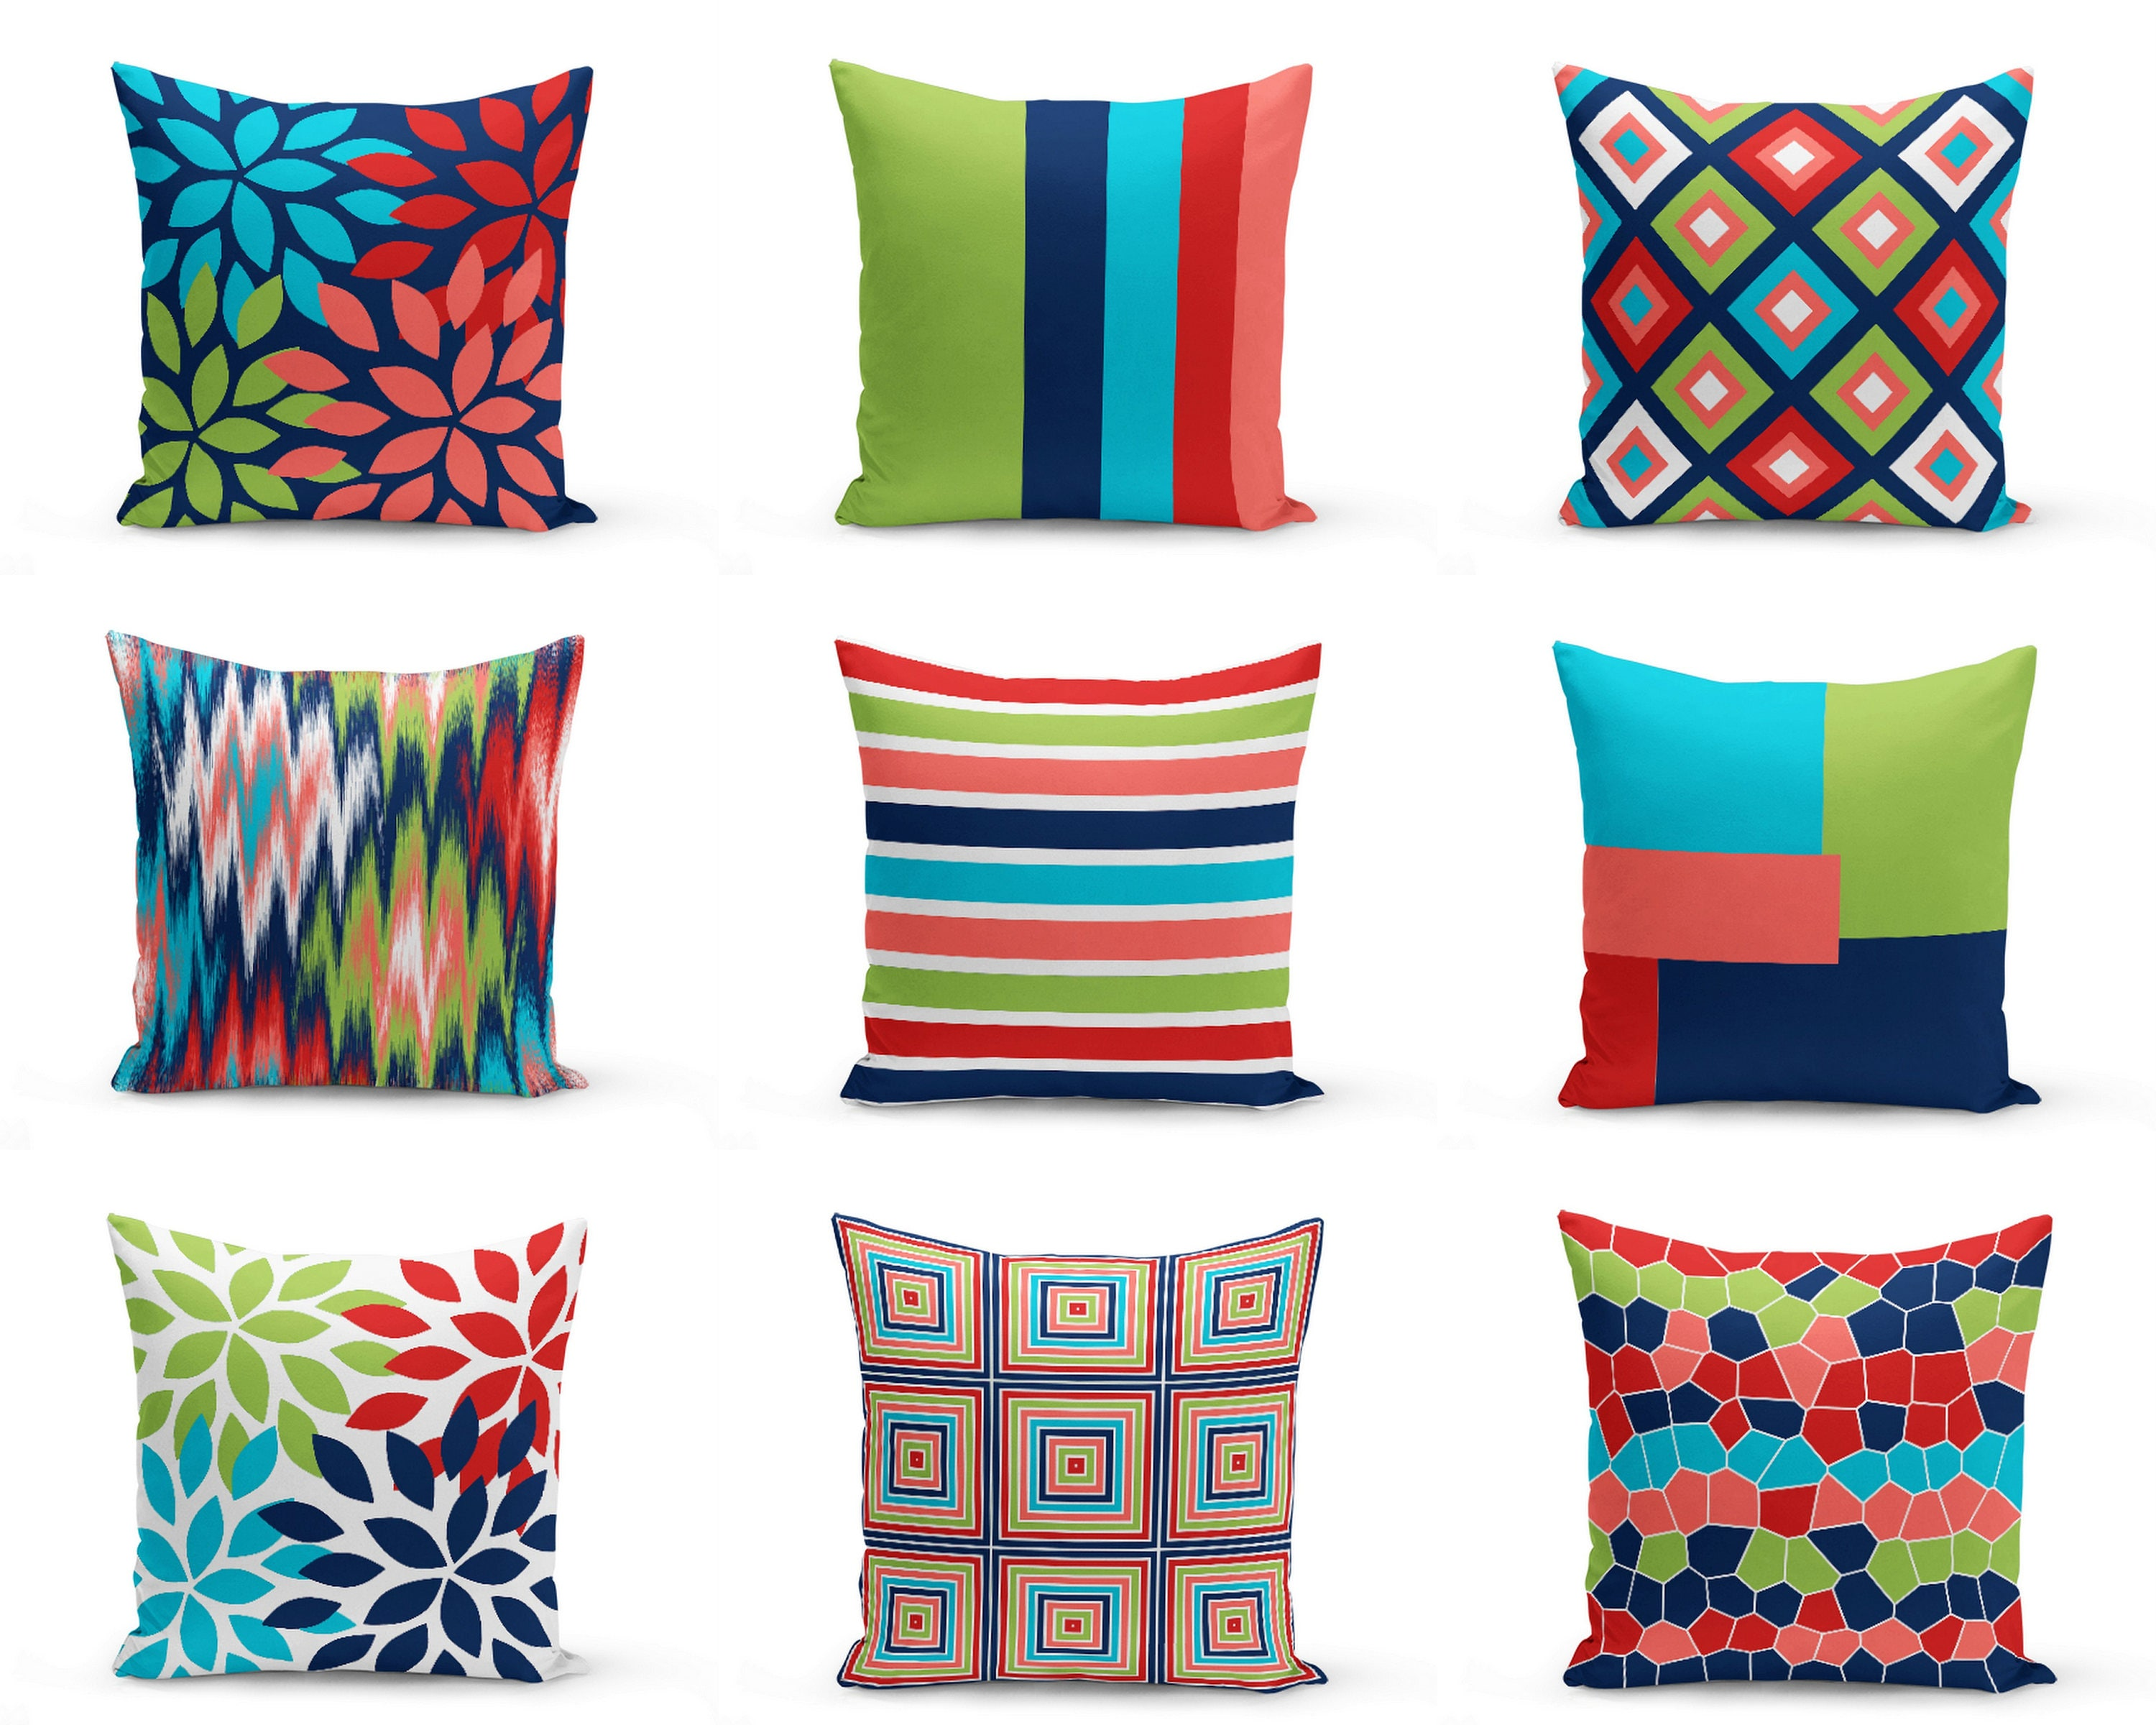 Colorful Outdoor Pillows Red Navy Blue Green Coral White